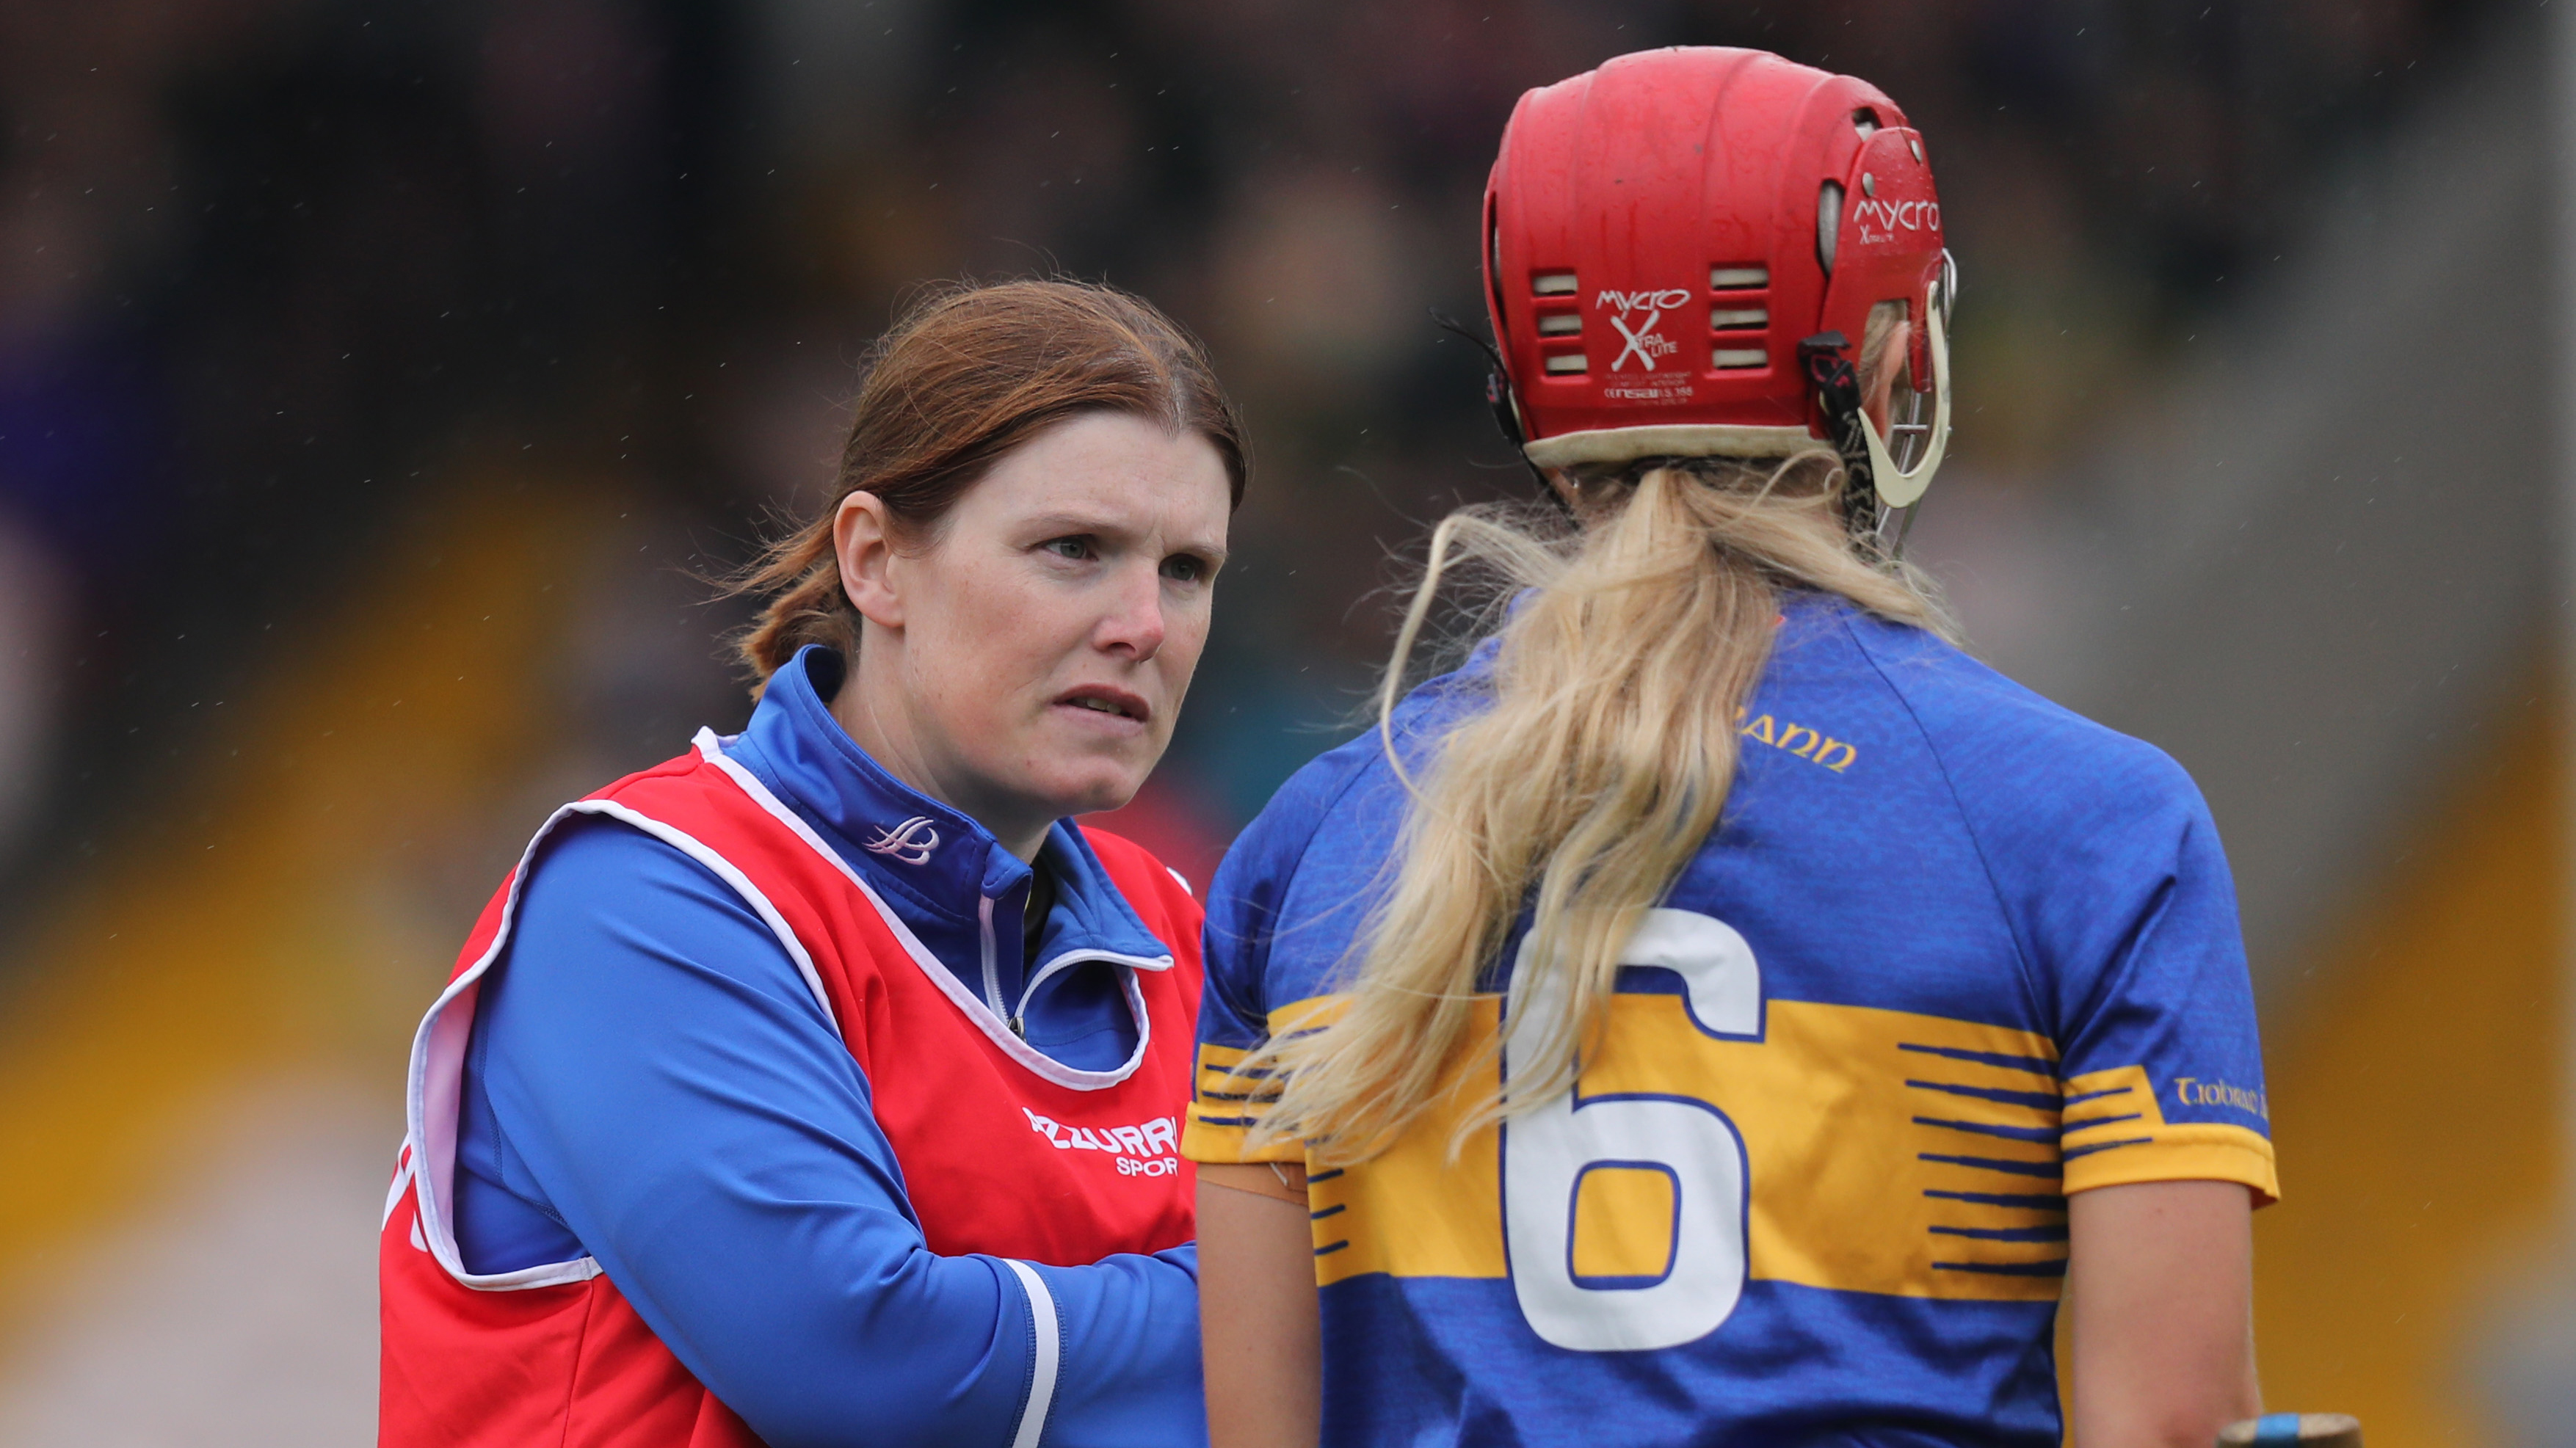 Interview with Tipperary Senior Camogie Manager Niamh Lillis